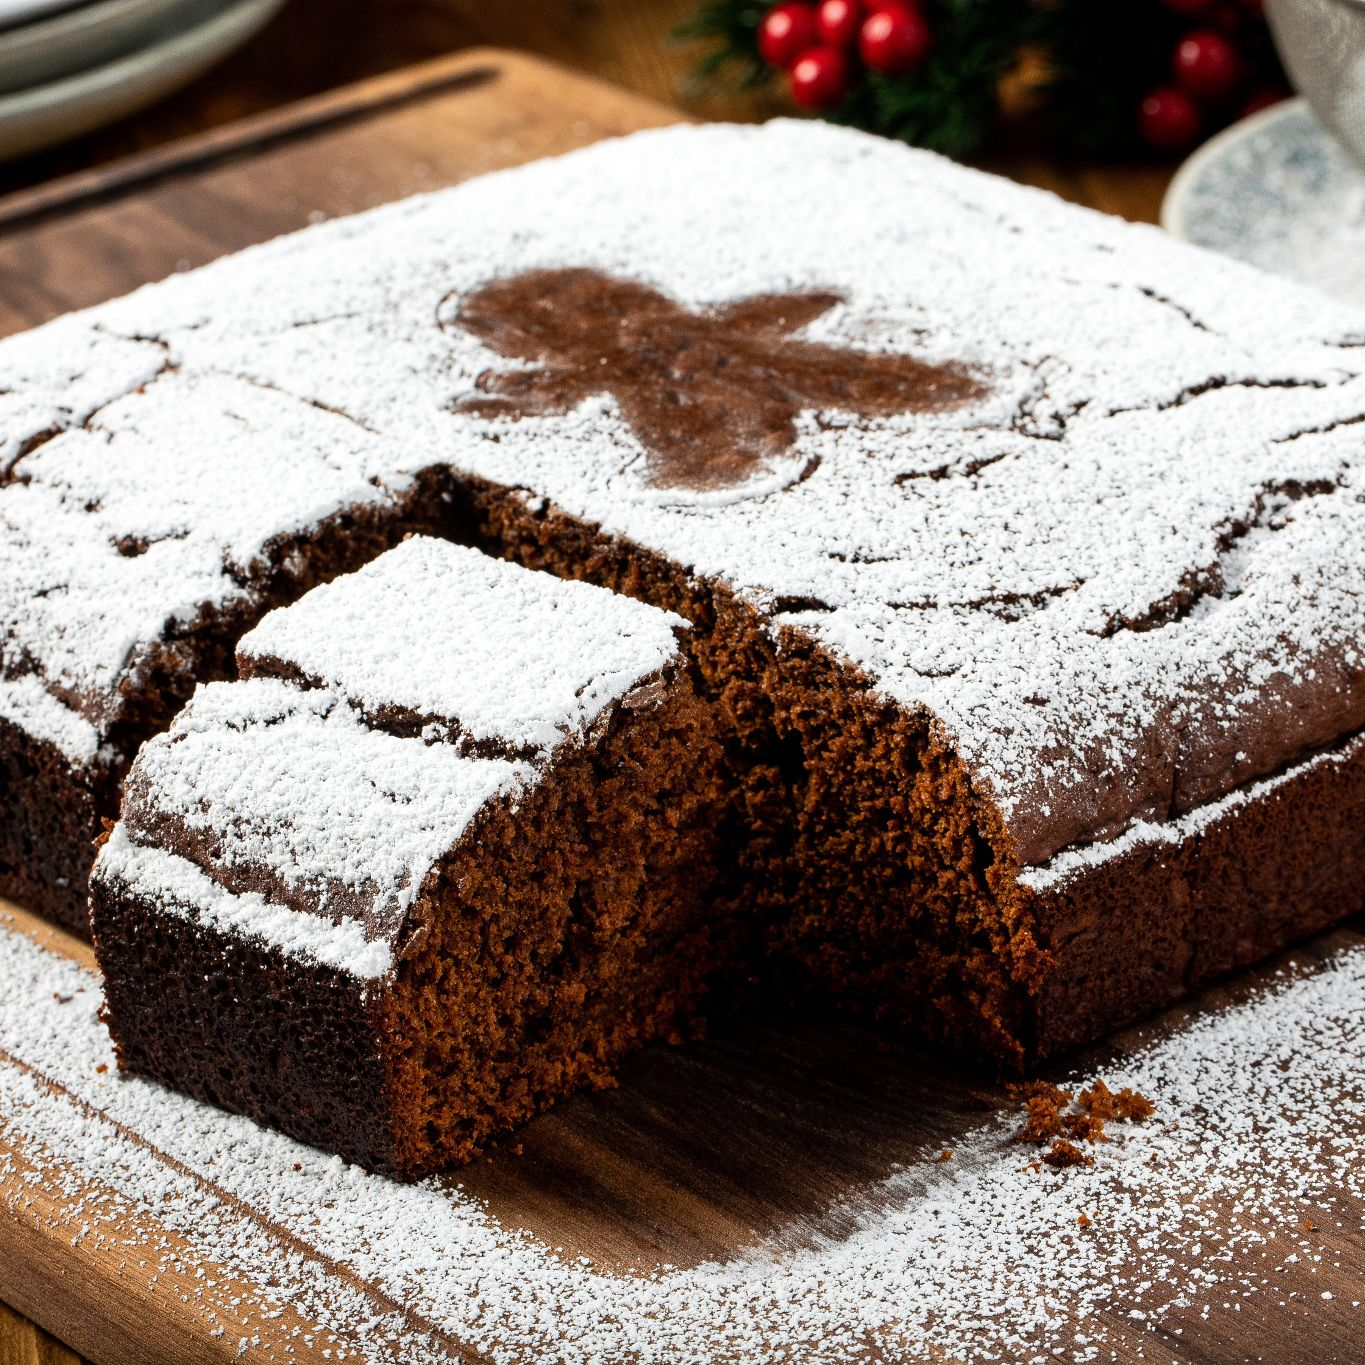 chocolate_gingerbread_cake_5483.jpg